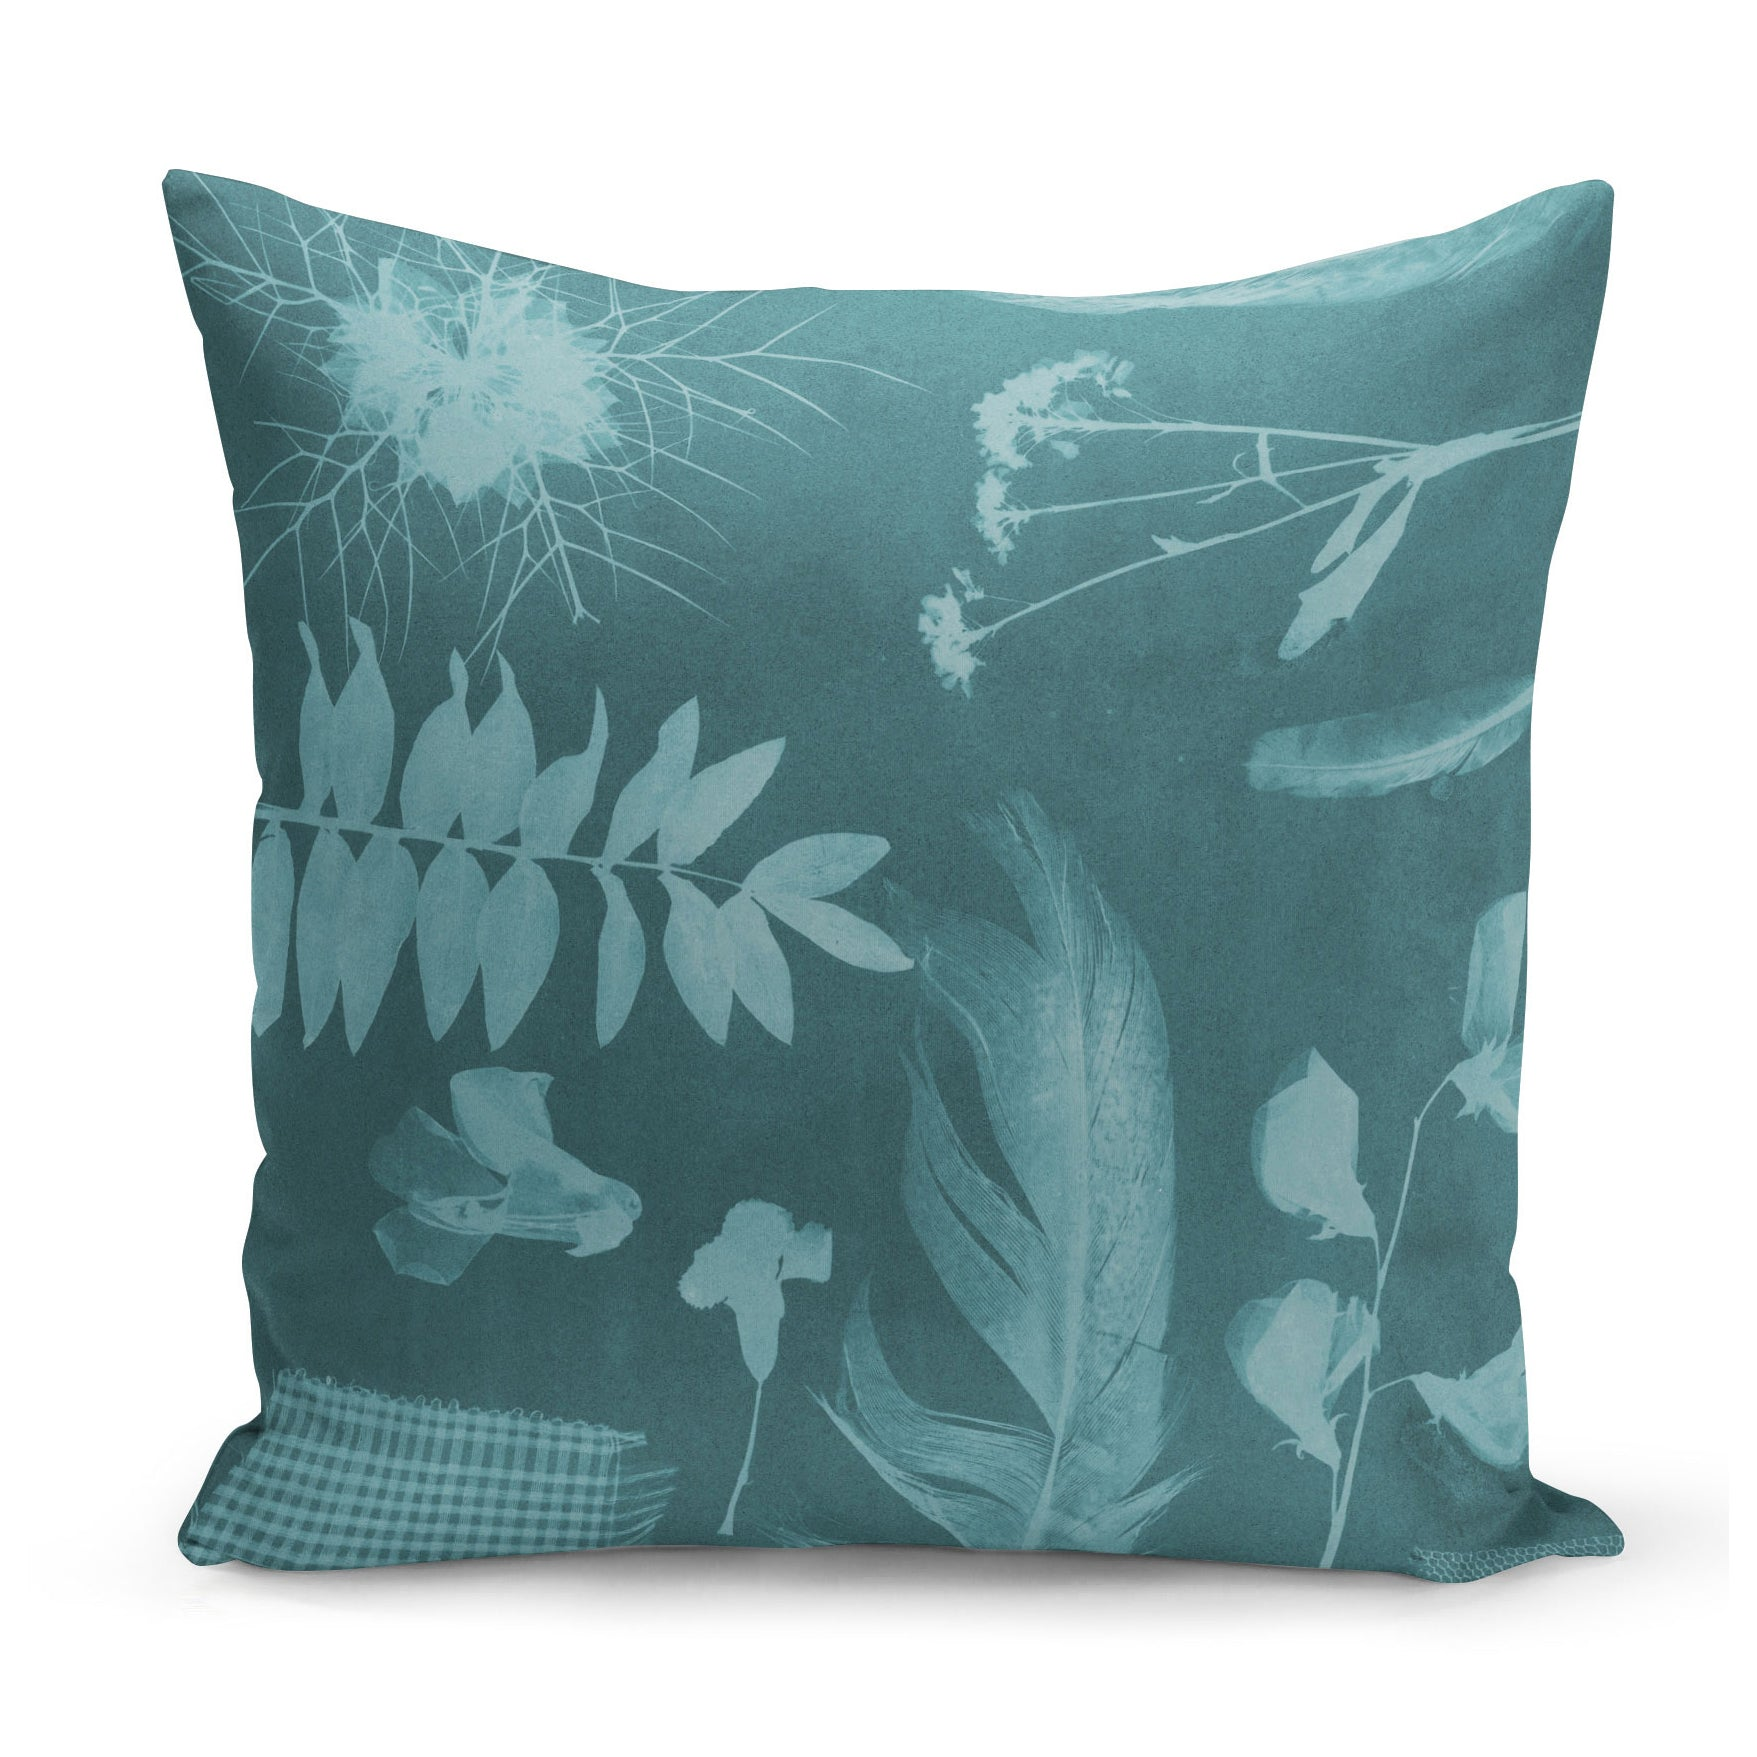 teal green cushion with x-ray style images of feathers, flowers and plants